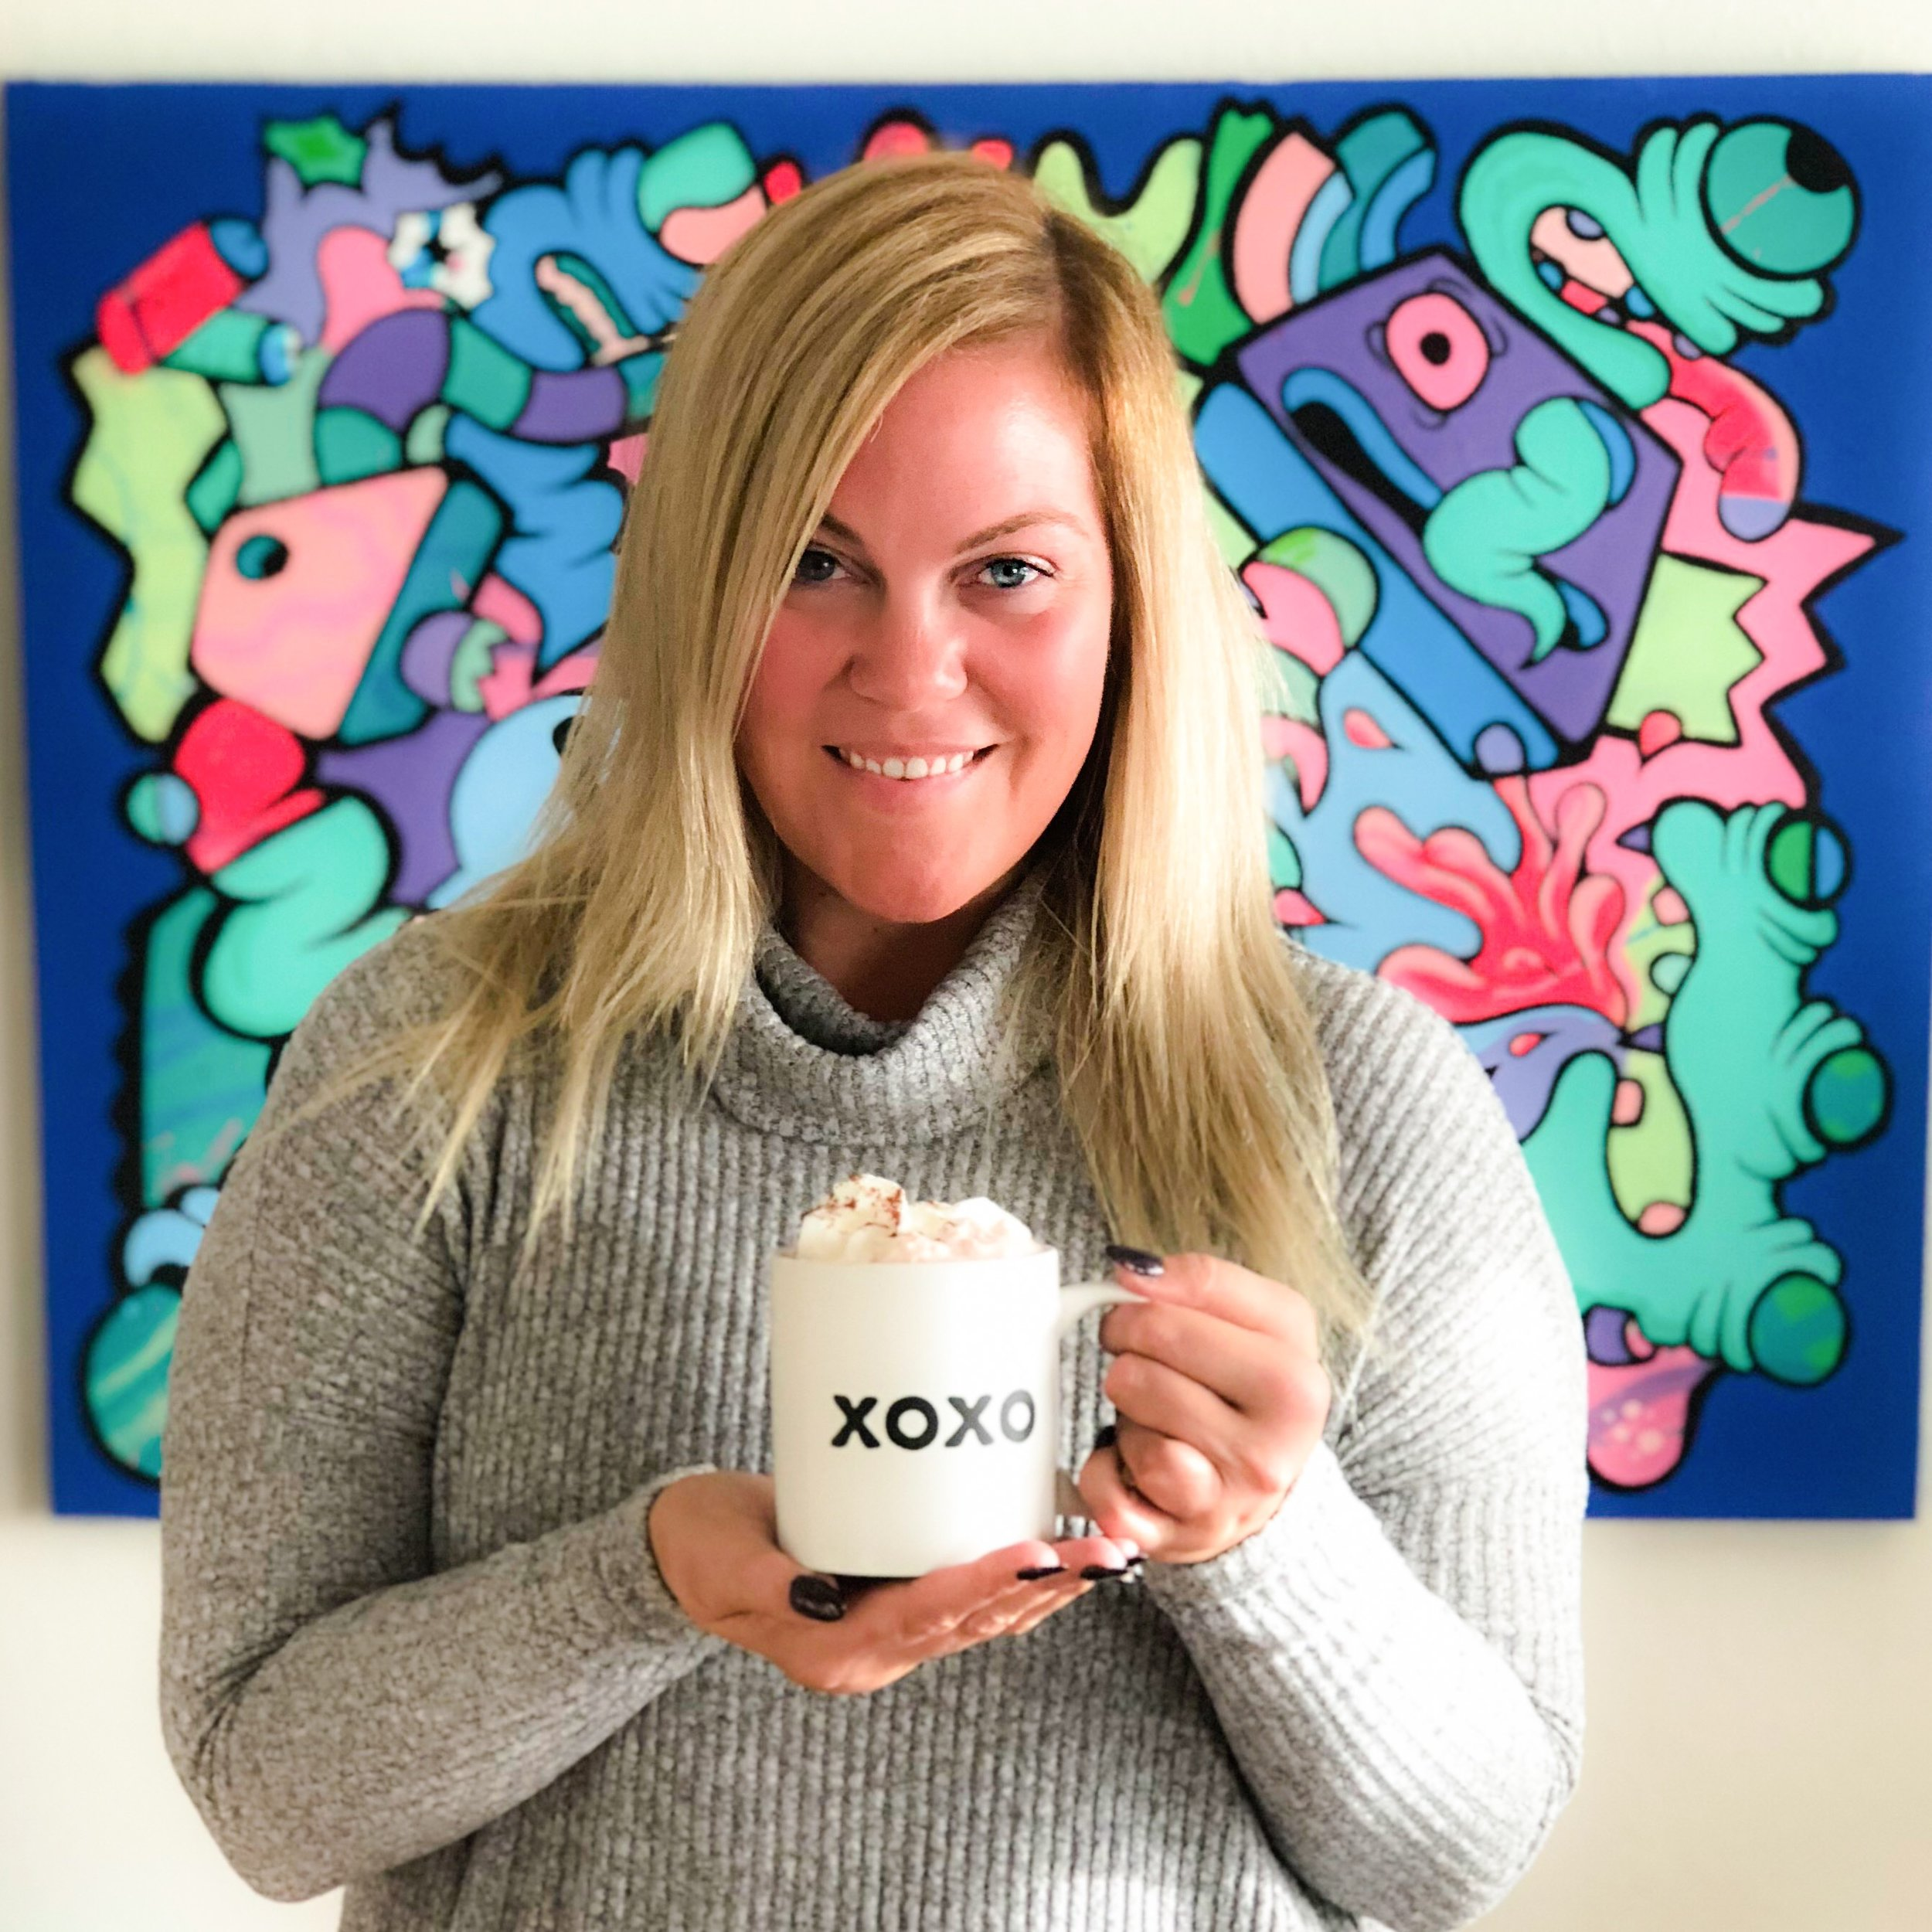 KETO COCOA GIVEAWAY! DELICIOUS MCT OIL HOT COCOA! by Jen Fisch via Keto In The City